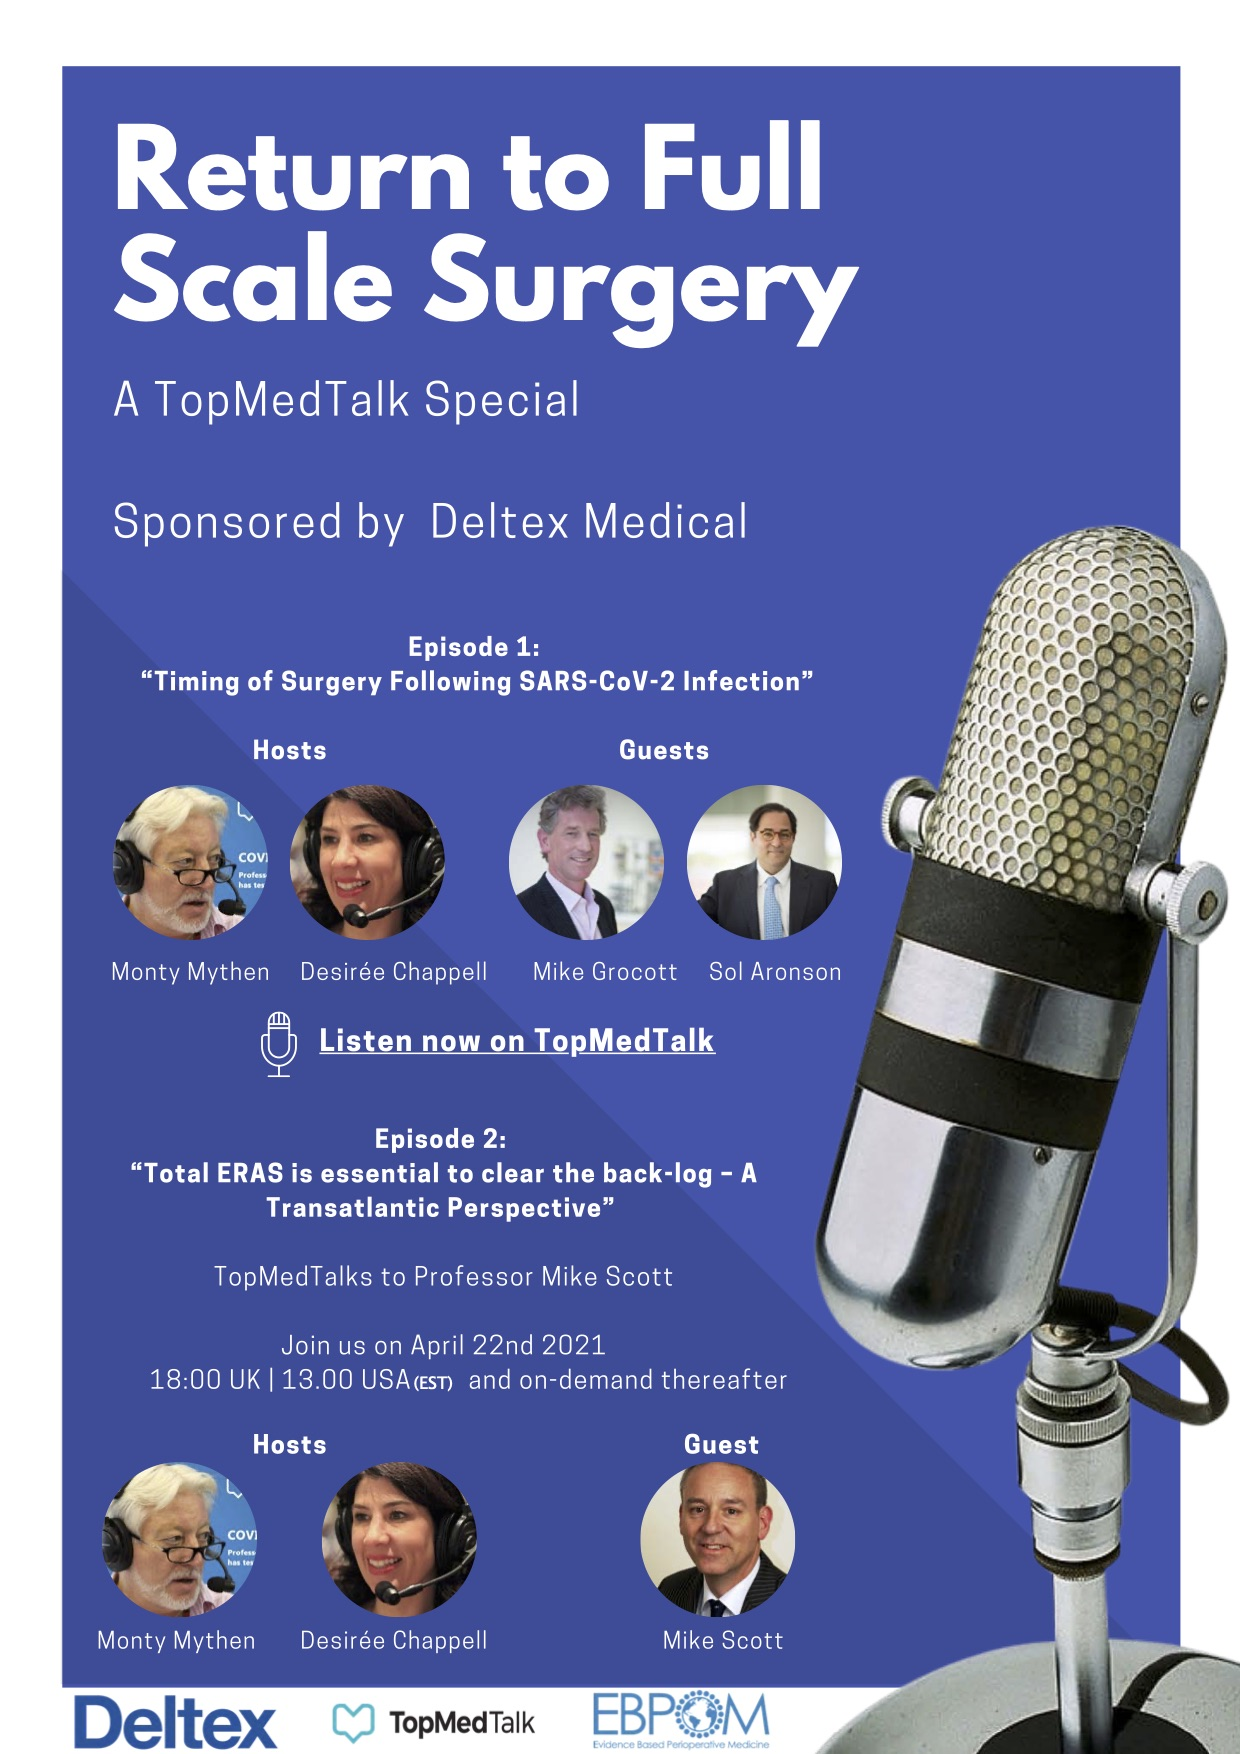 Return-to-Surgery podcasts supported by Deltex Medical